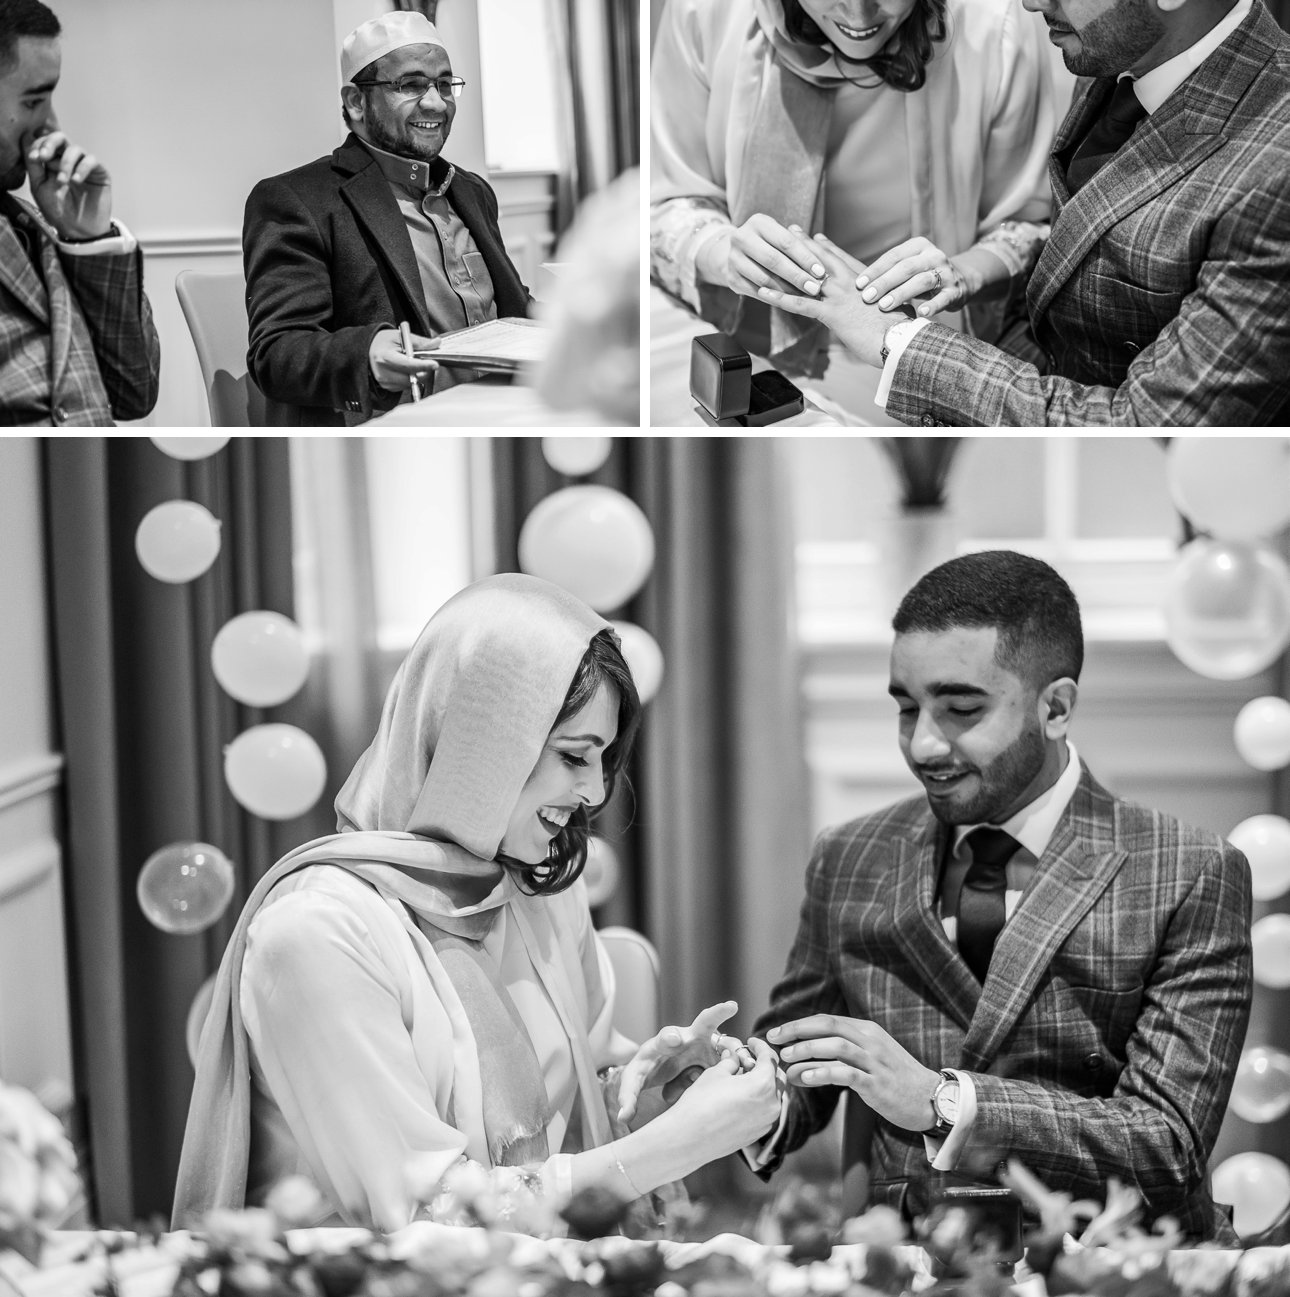 A muslim wedding ceremony at the Kimpton Fitzroy London.